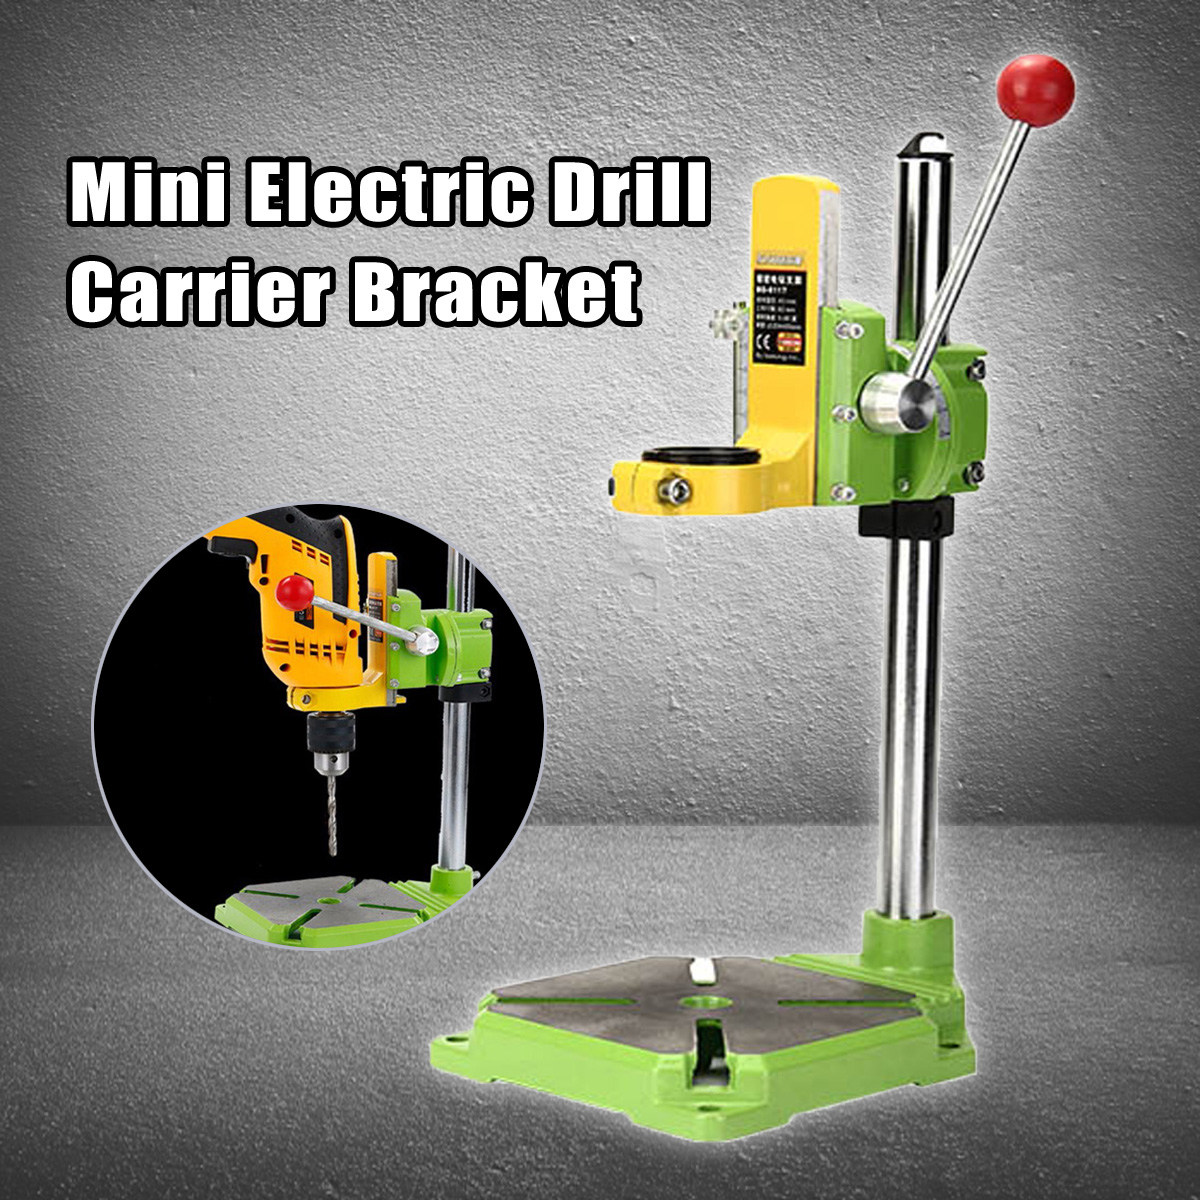 90 Degree Mini Electric Drill Carrier Bracket Electric Rotating Fixed Frame Bench Drill Stand Press Power Tool Accessories